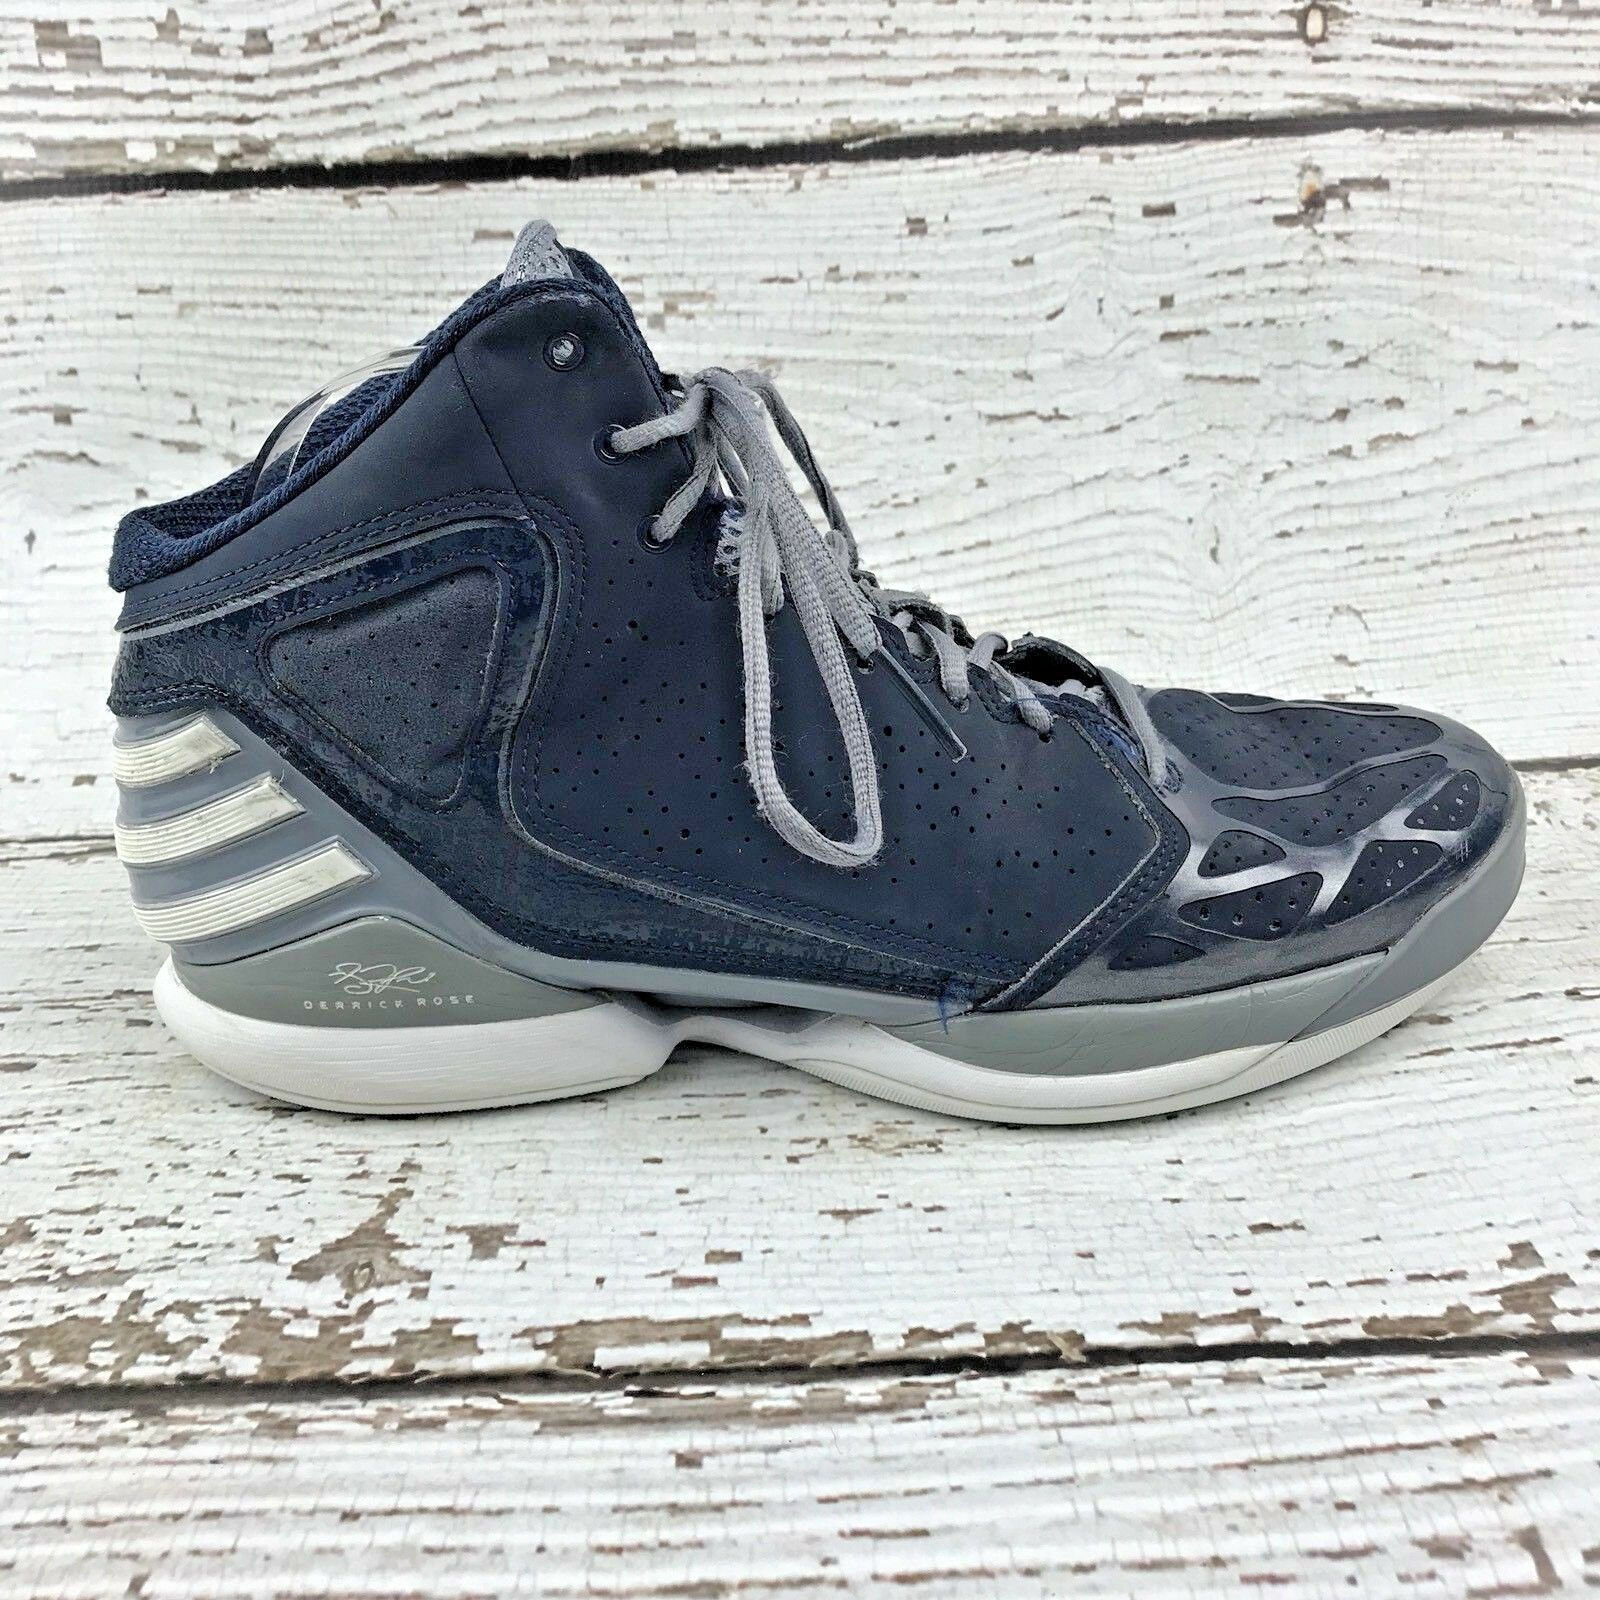 promo code acefc 38511 ... store adidas mens size 10 derrick rose shoes 773 navy basketball shoes  rose sneakers 2012 g56263